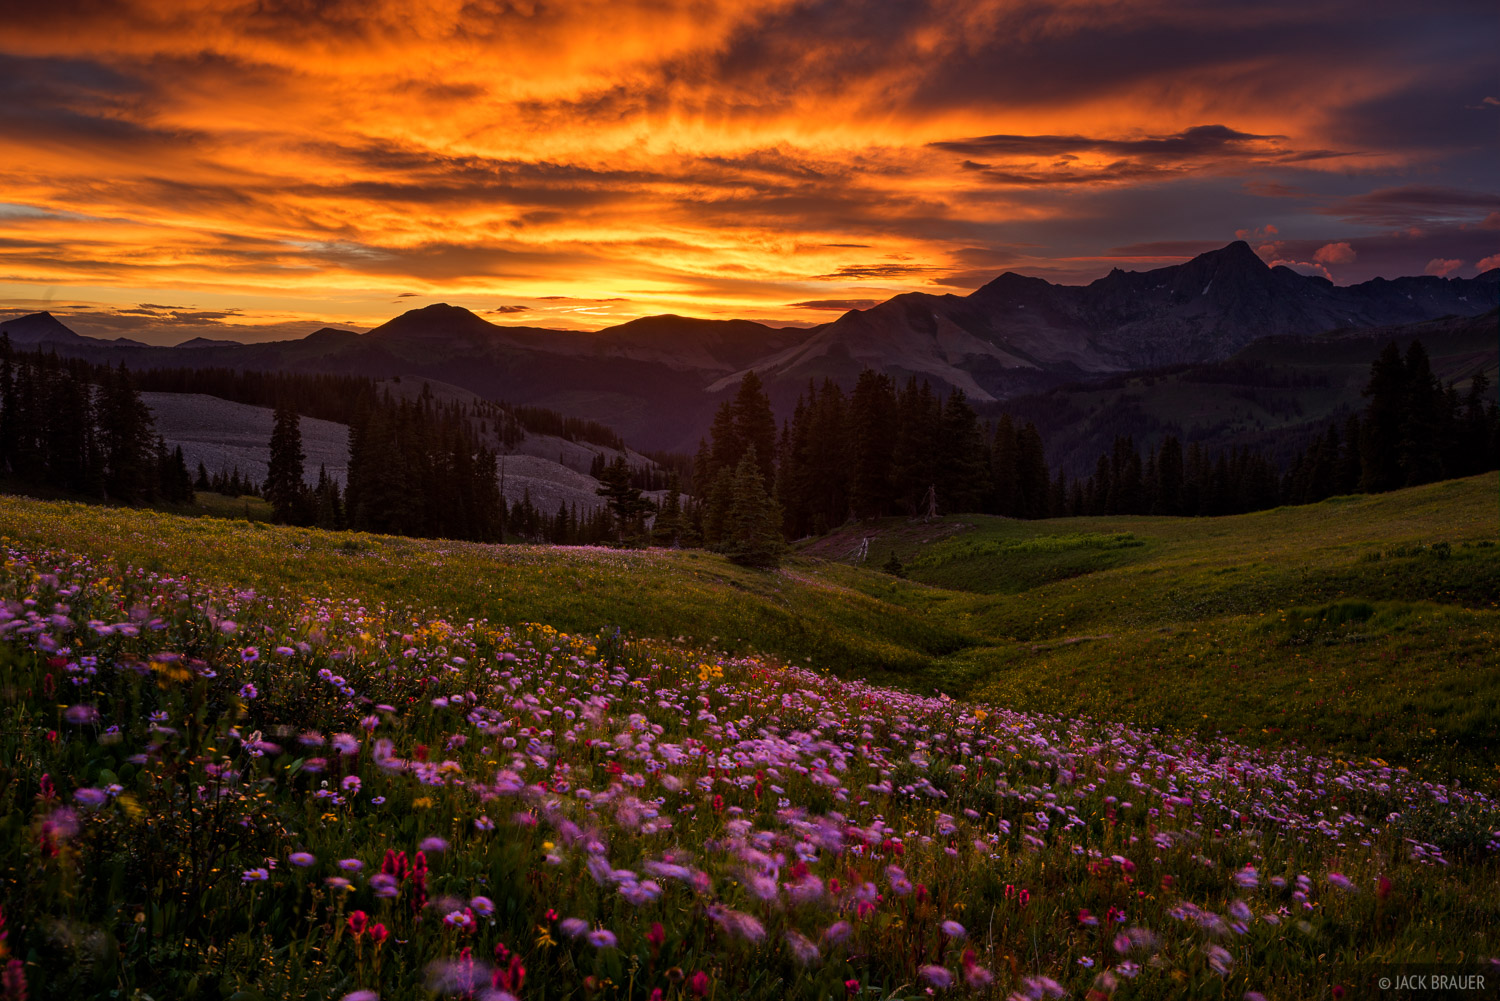 Colorado,Grizzly Peak,San Juan Mountains,wildflowers, sunset, photo